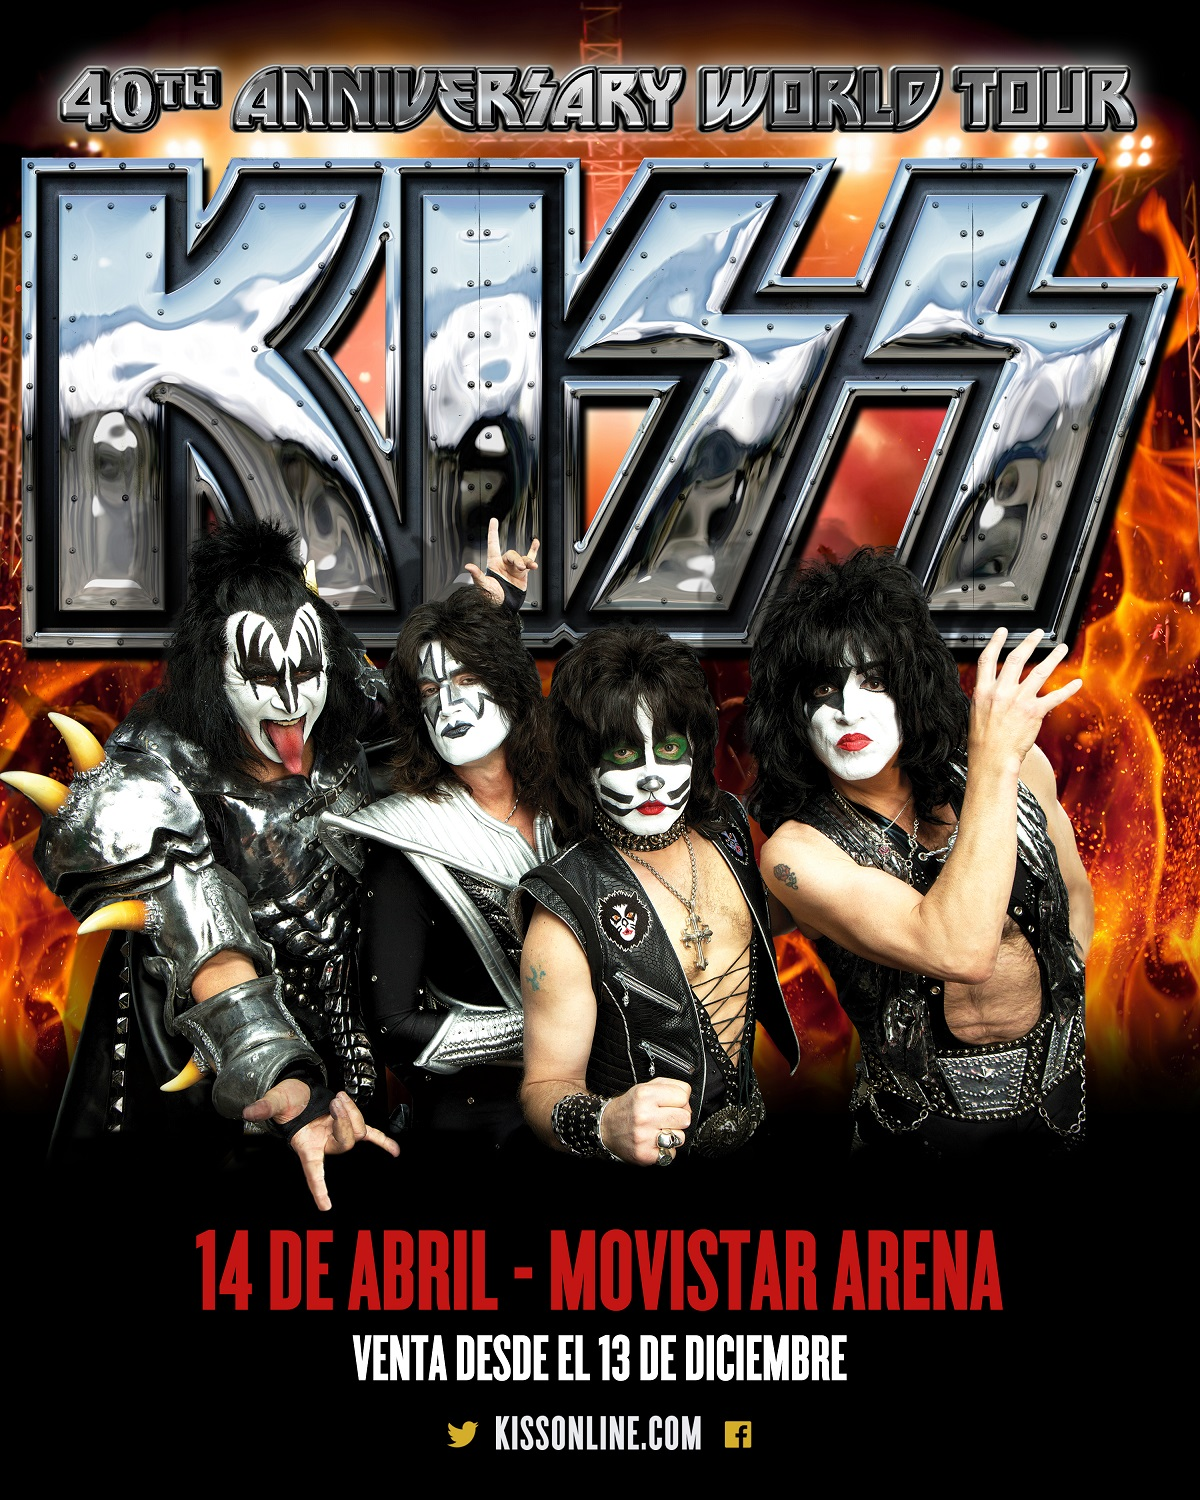 Confirmado: Kiss regresa a Chile en abril de 2015 para un concierto en el Movistar Arena